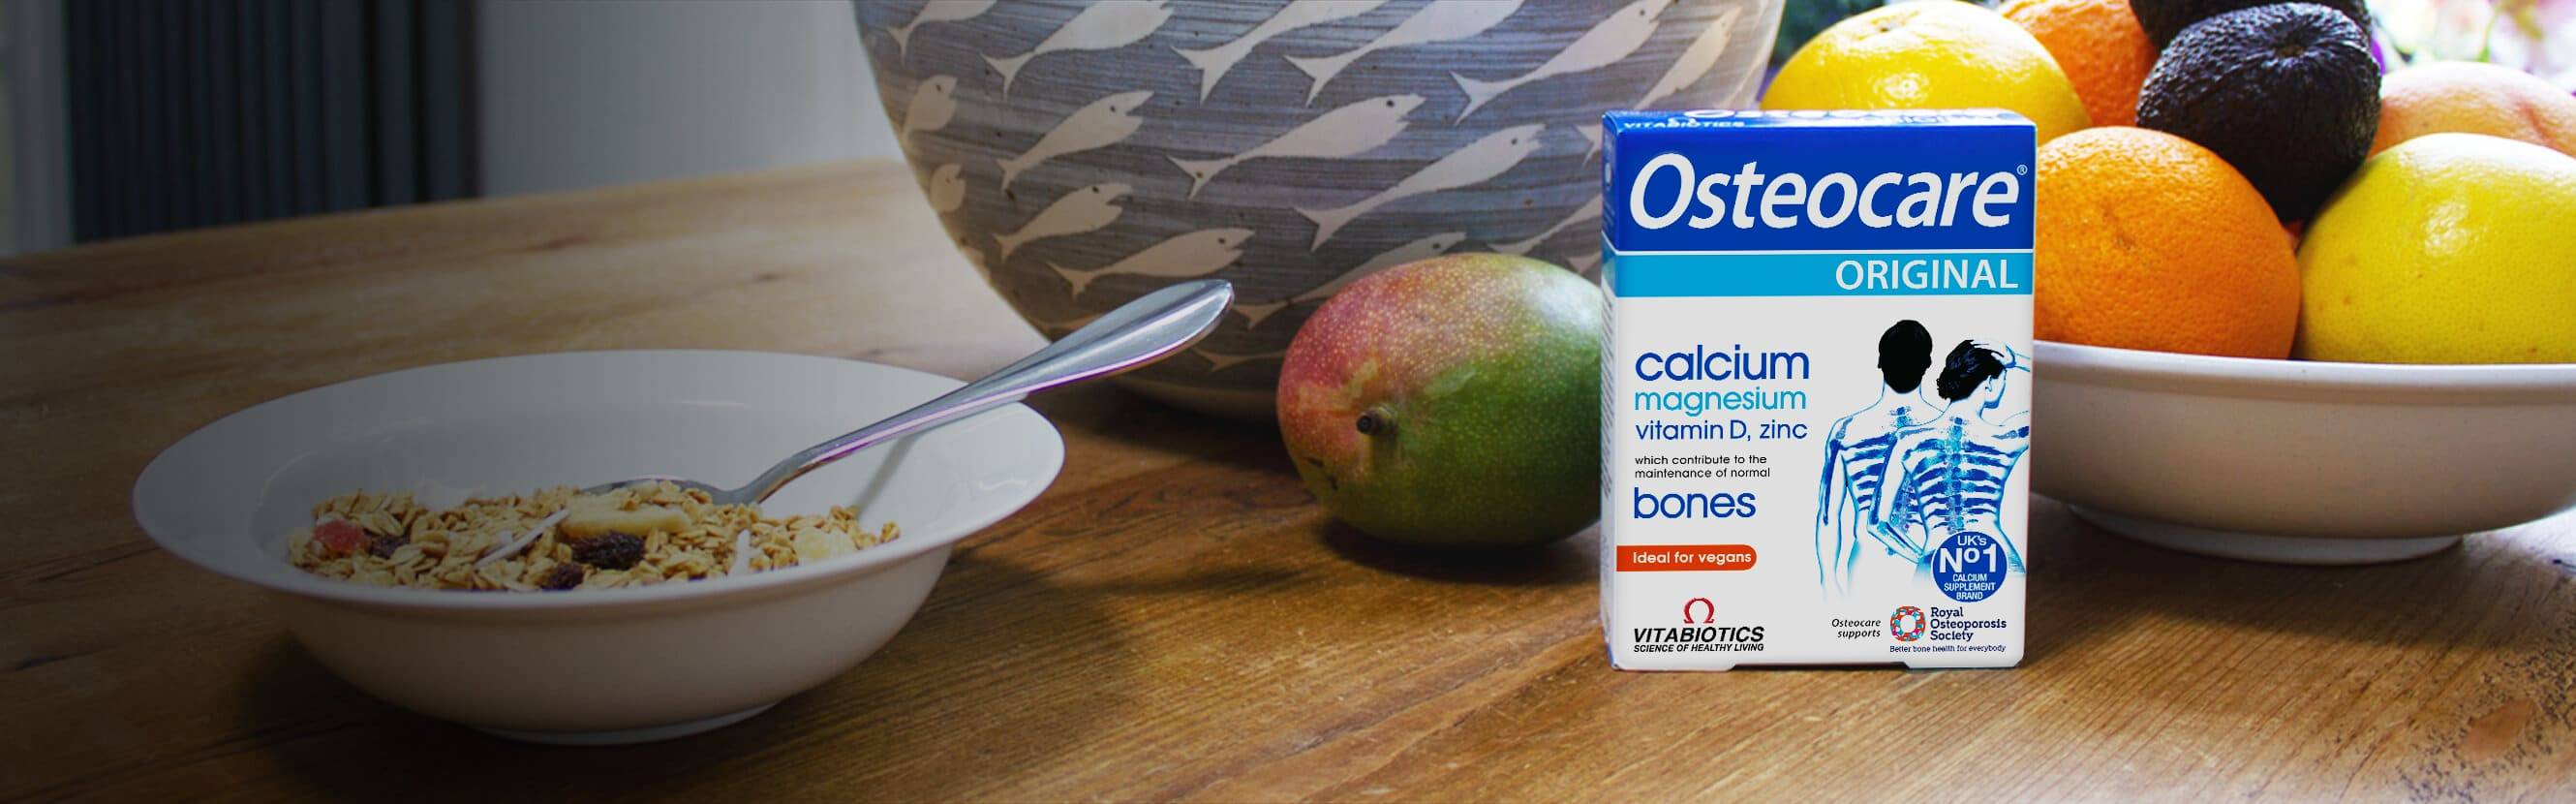 We all count on Calcium for bone health – but that's just the start. Osteocare Original combines Calcium with important co-factors like Vitamin D and Magnesium, which contribute to the maintenance of normal bones. It's expert nutritional support that goes beyond your bones.